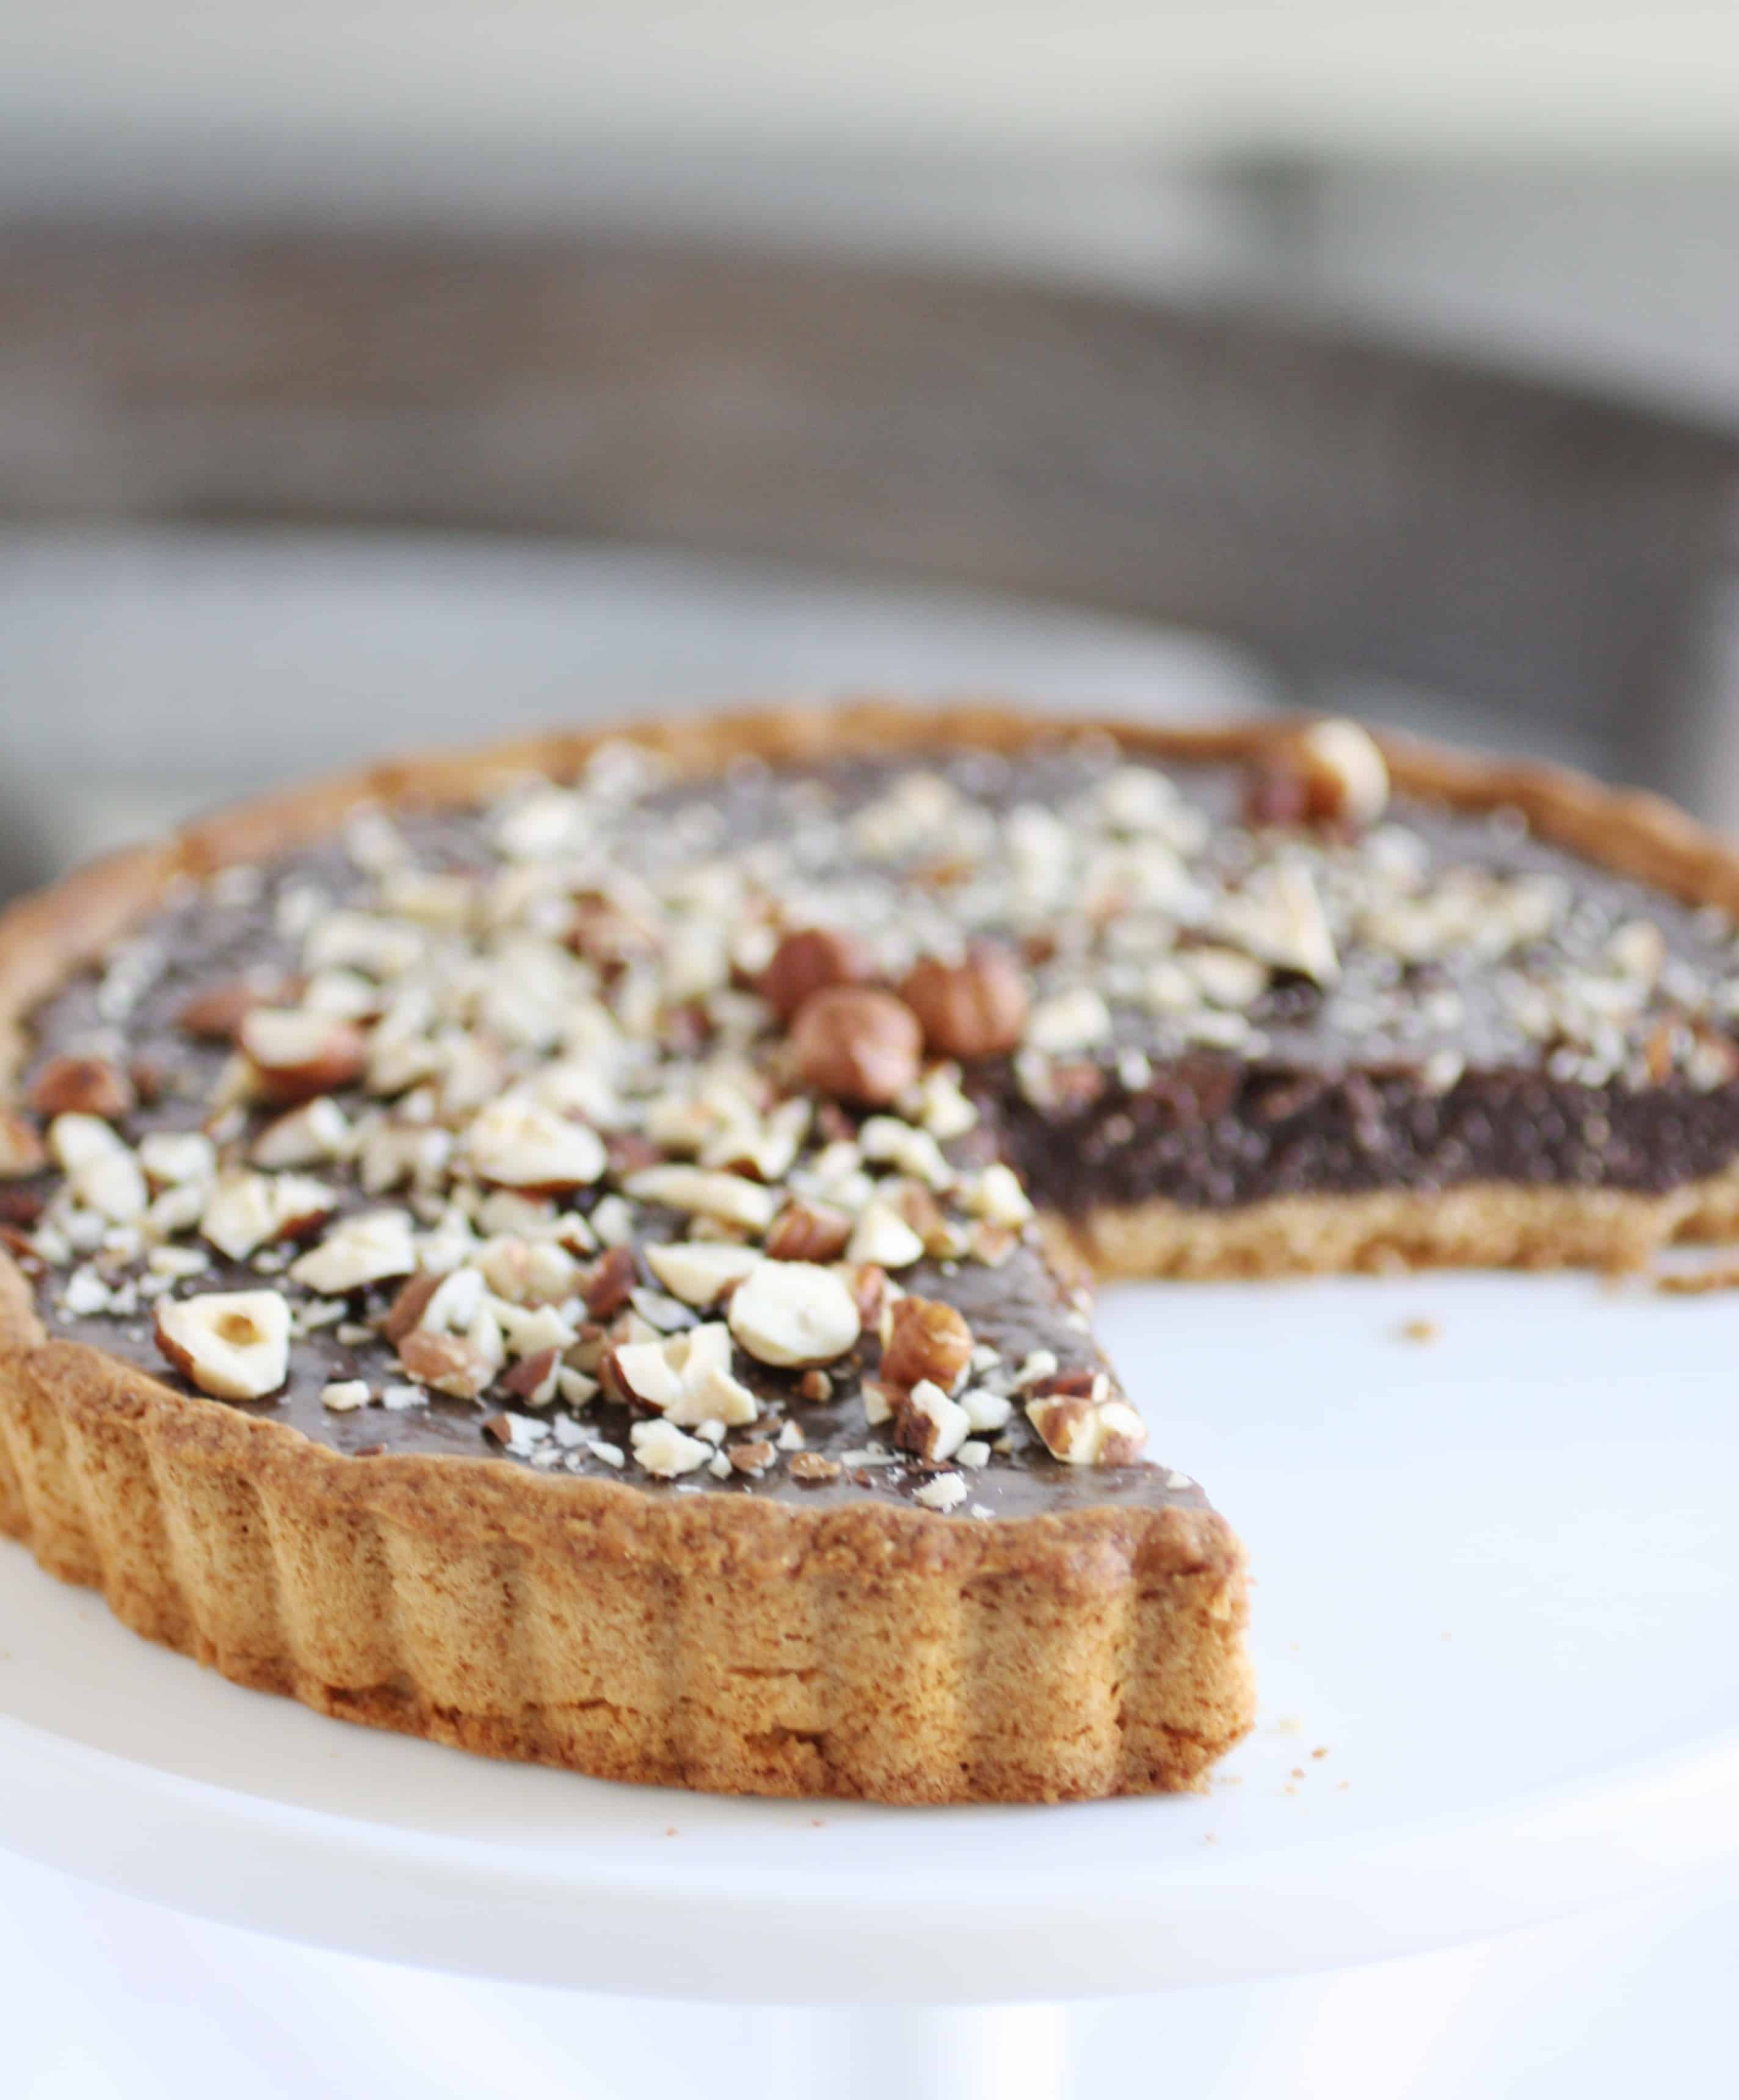 chocolate hazelnut nutella tart